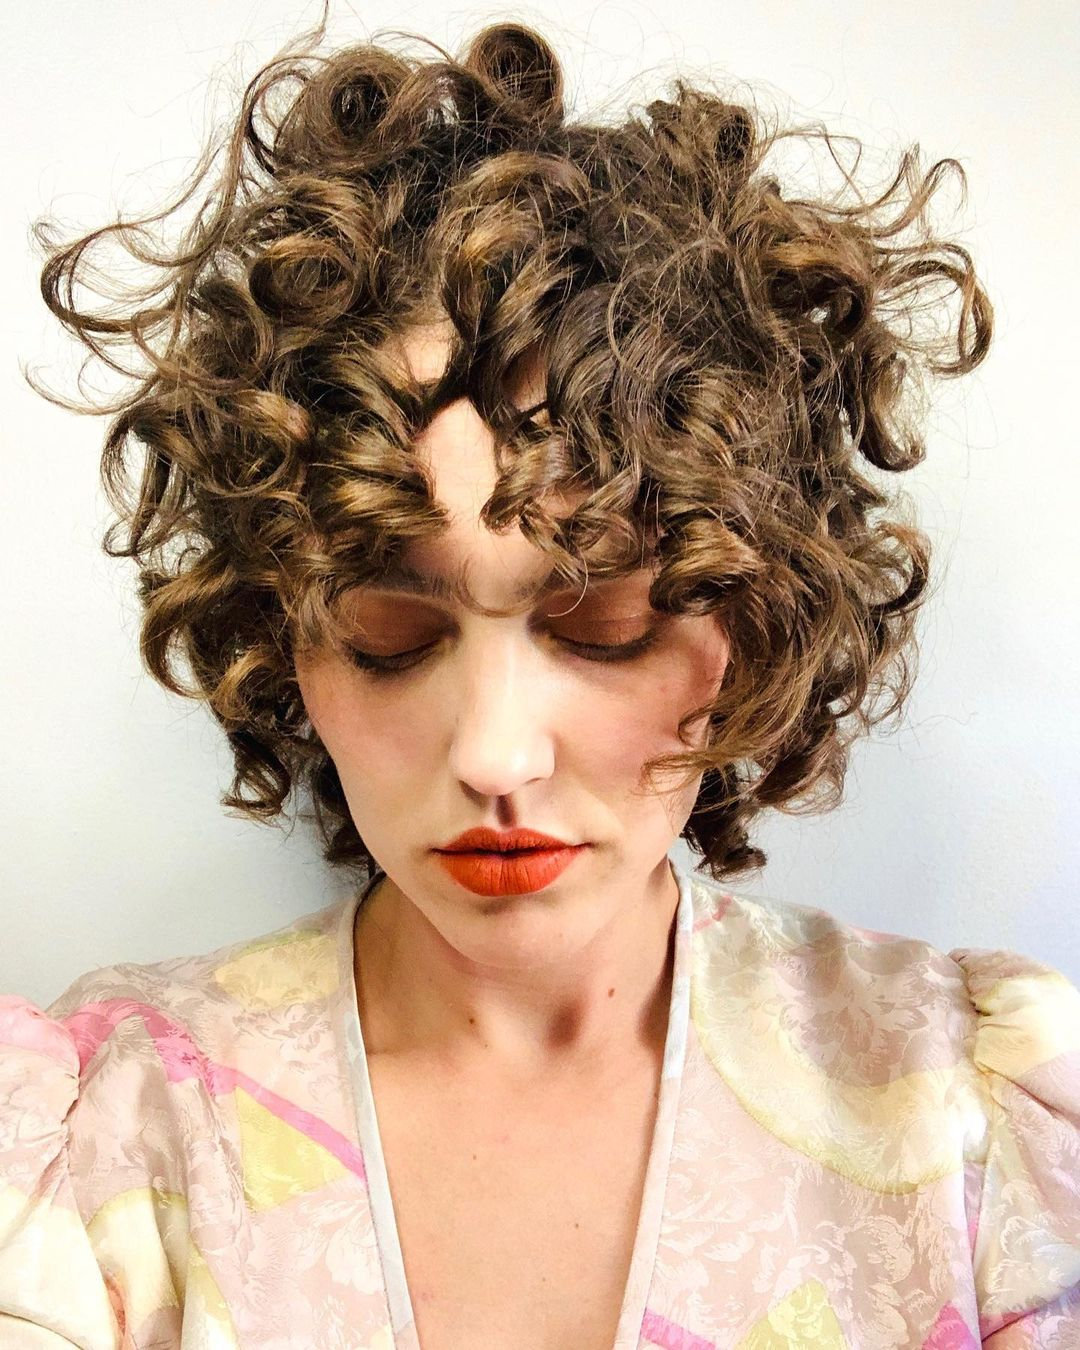 21 Short Curly Hair with Bangs to Fall In Love With